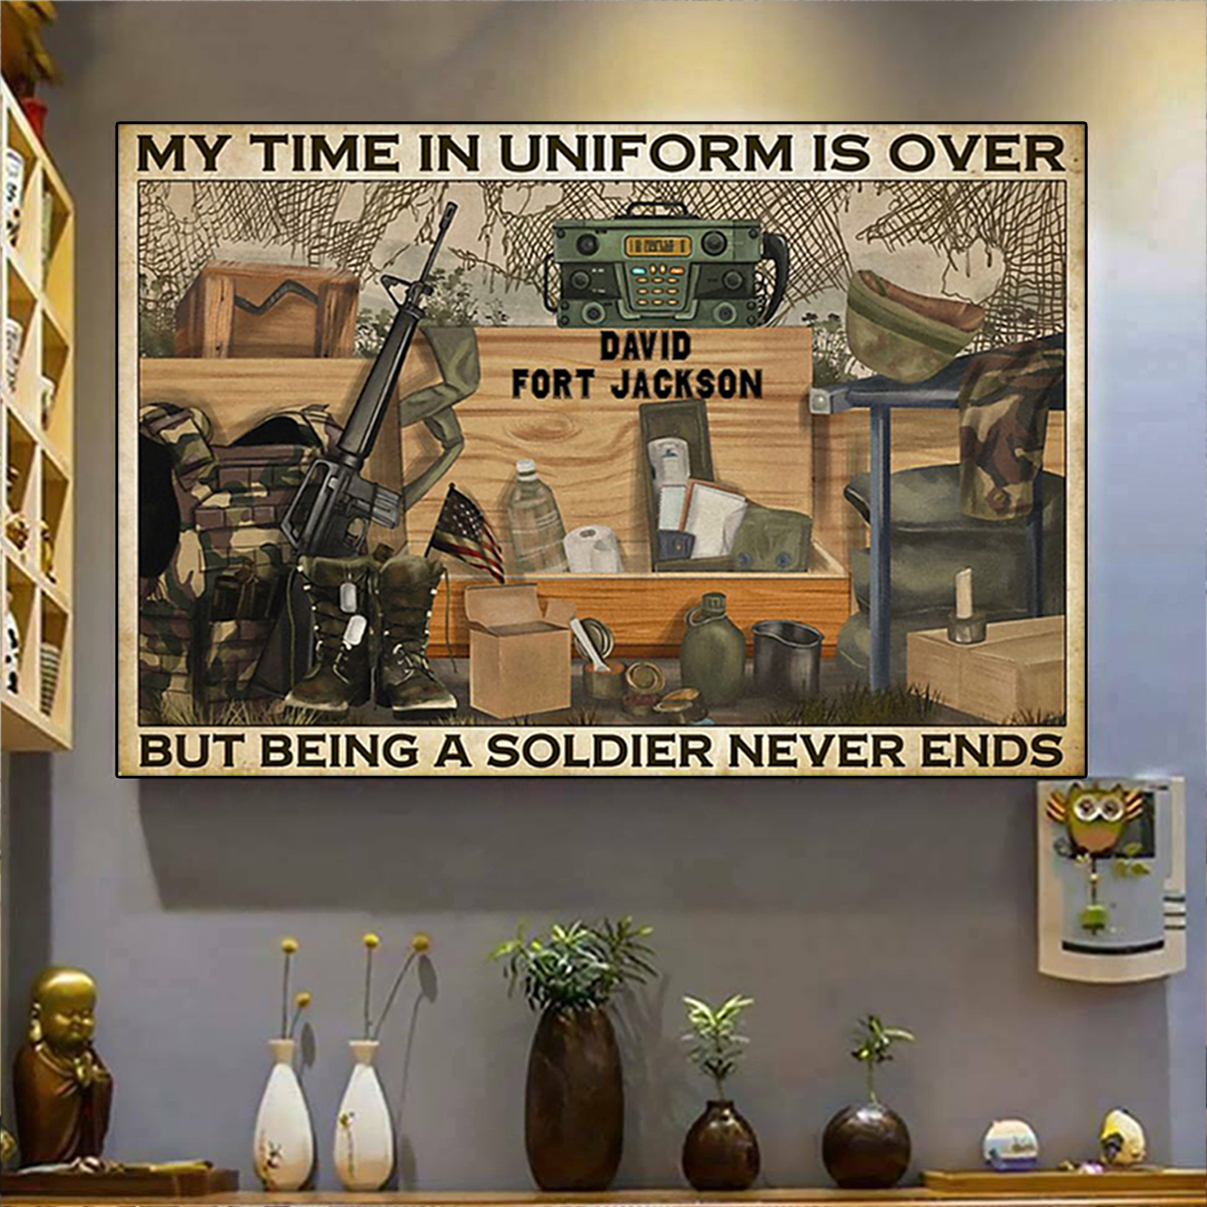 Personalized custom name Veteran my time in uniform is over poster A2